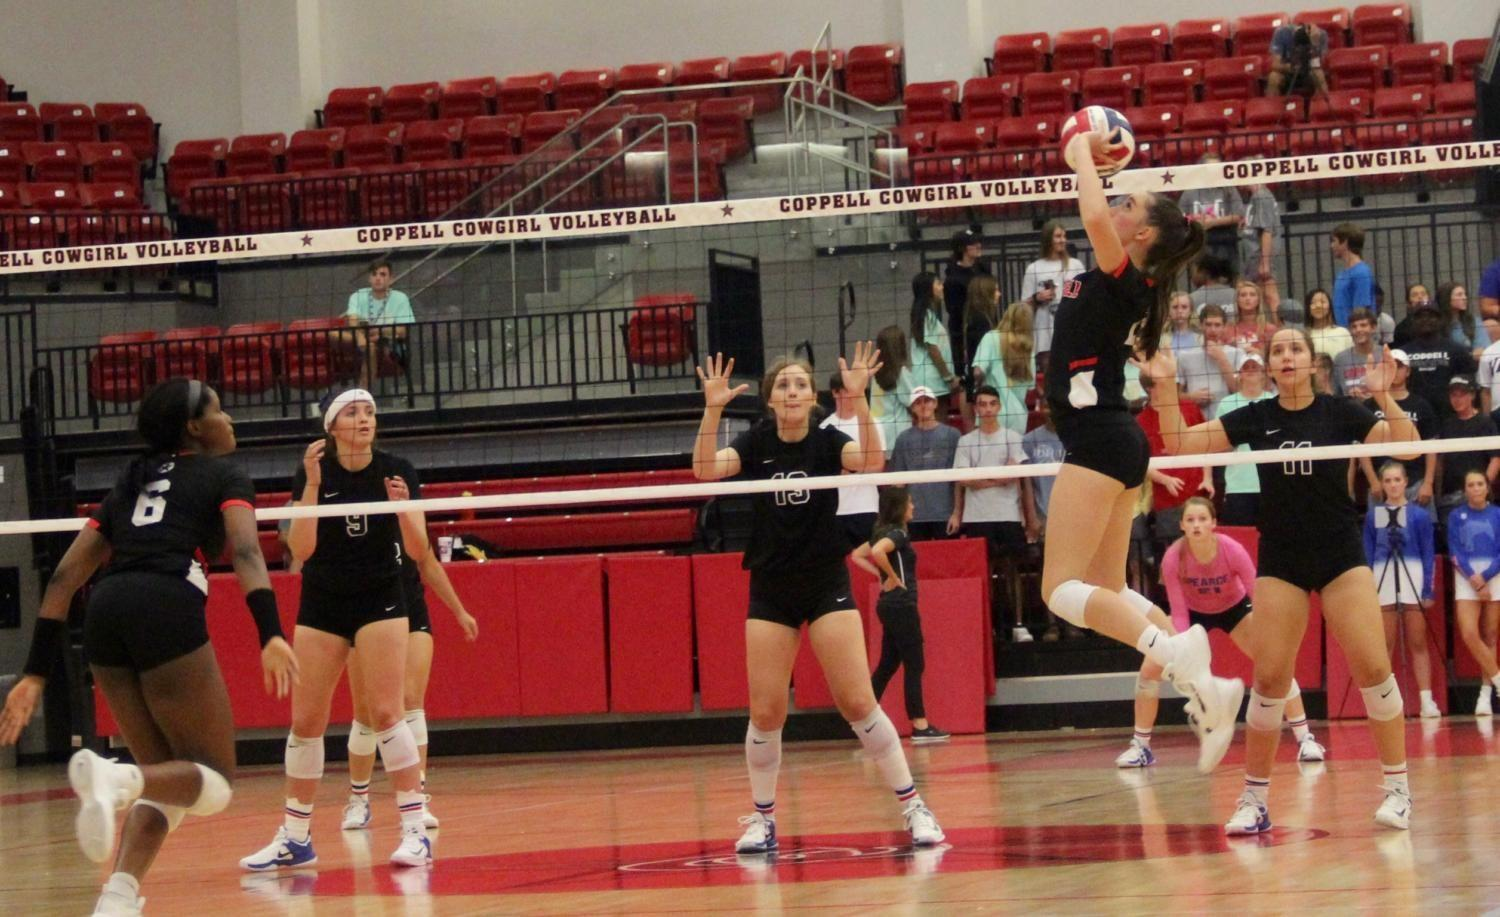 Coppell+High+School+senior+defensive+specialist+Ava+Racz+sets+to+junior+Amarachi+Osuji+during+last+night%E2%80%99s+match+at+the+Coppell+High+School+Arena+against+Pearce+on+Tuesday+night.+The+Cowgirls+defeated+the+Lady+Mustangs%2C+25-21%2C+25-23%2C+24-26%2C+25-14%2C+in+their+first+home+district+game.